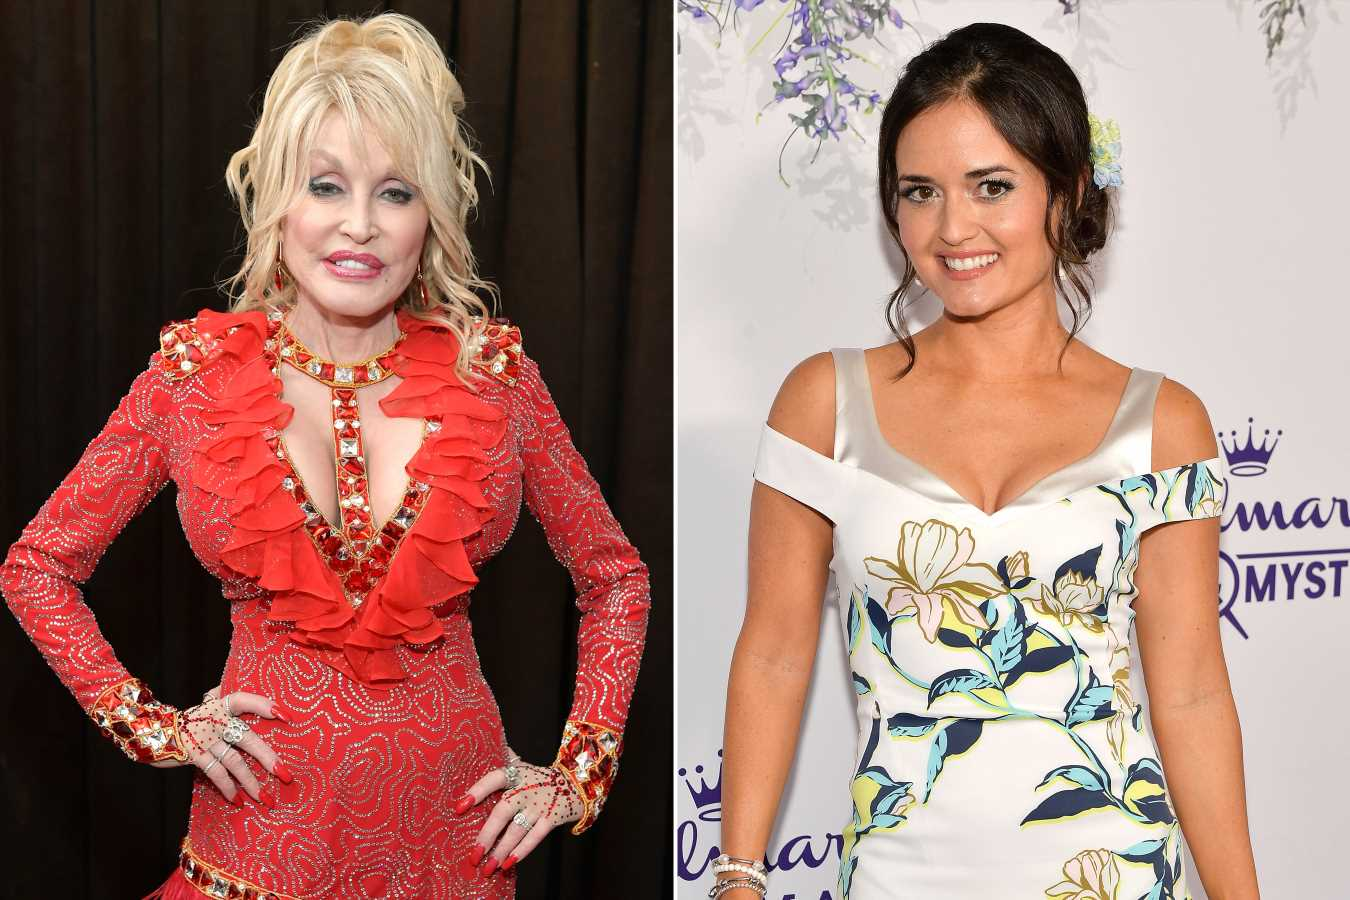 Danica McKellar, Dolly Parton to star in Christmas at Dollywood for Hallmark